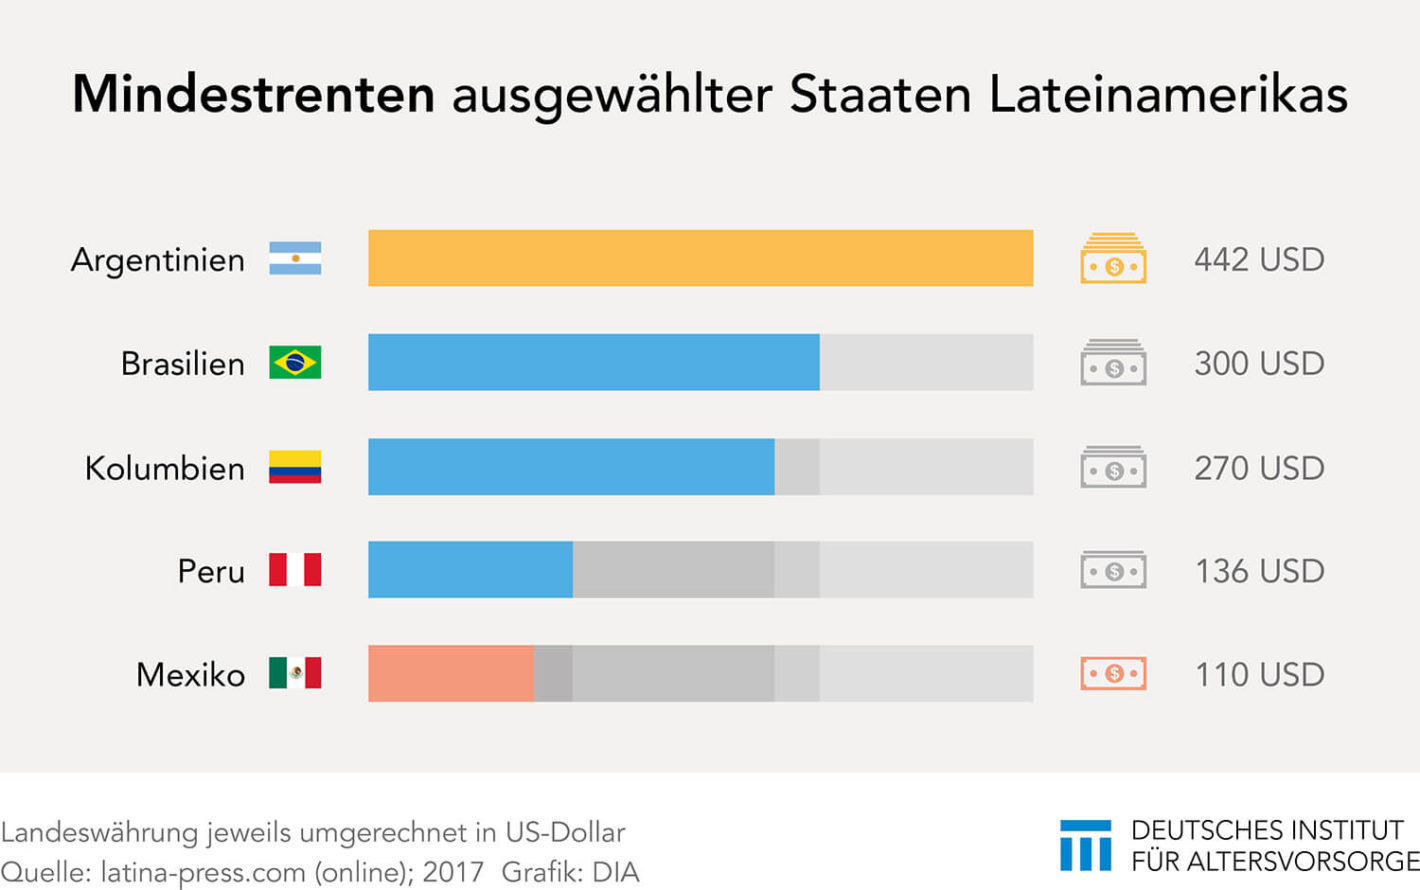 Mindestrenten in Lateinamerika